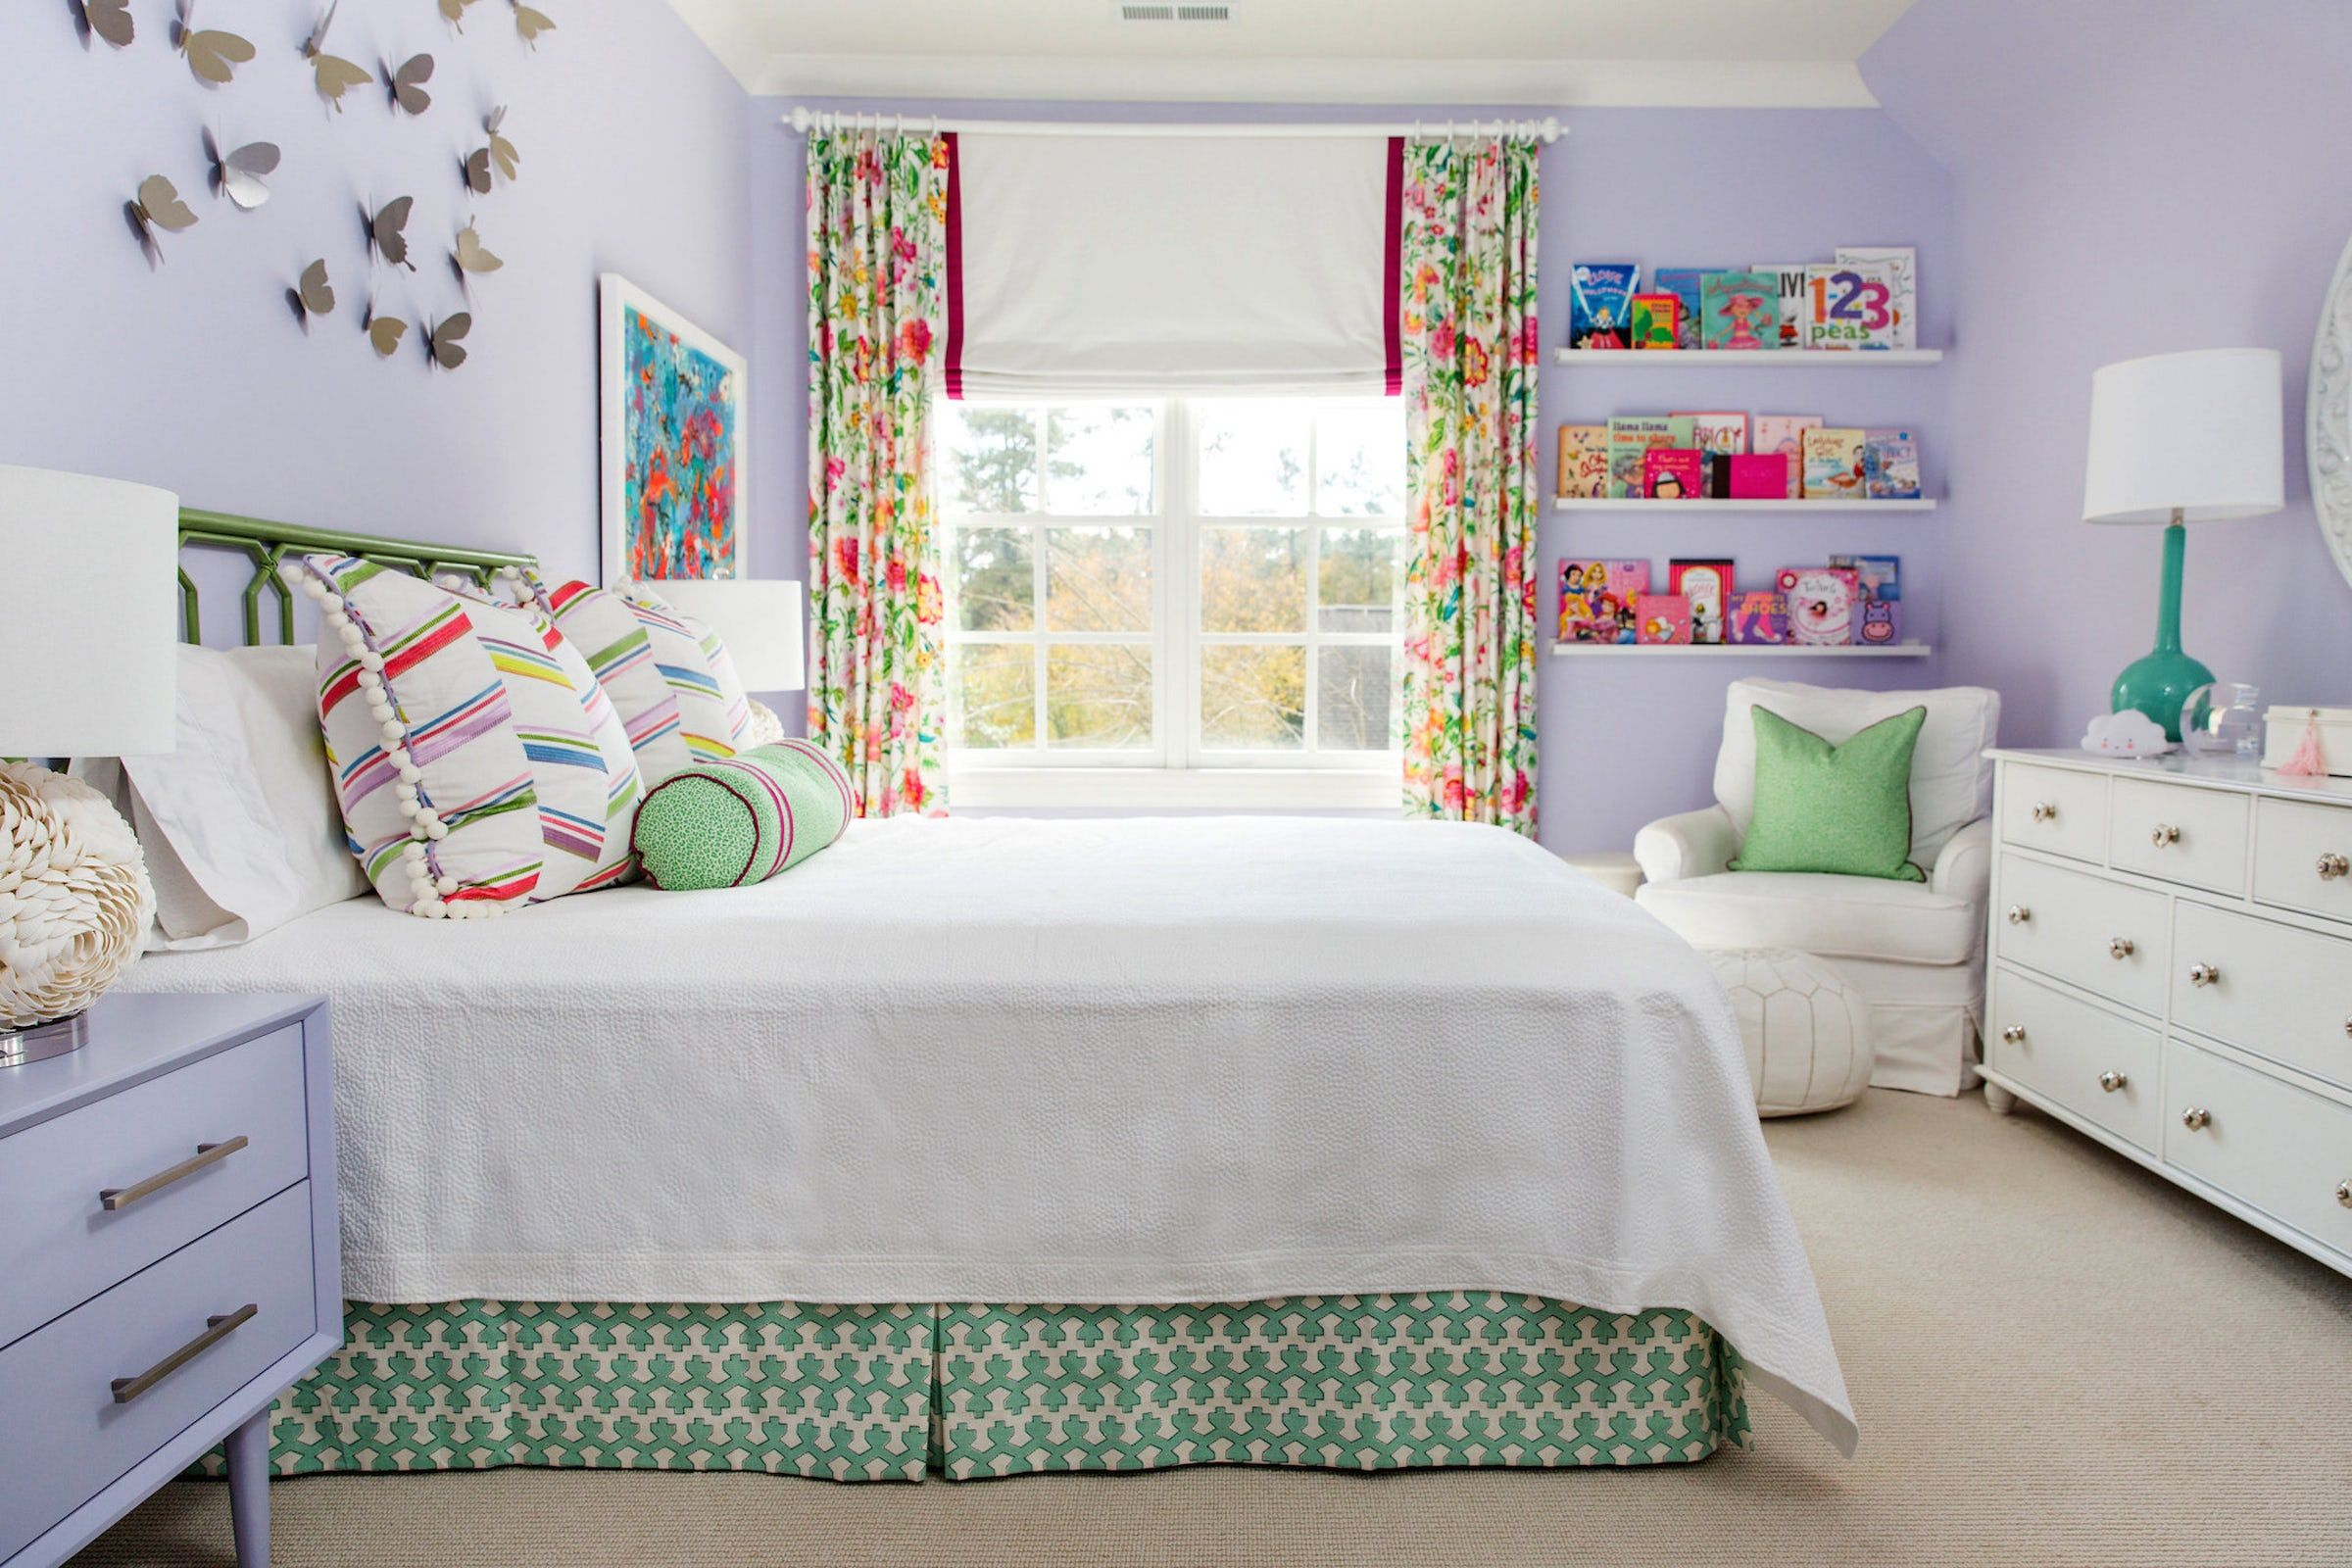 girls bedrooms. Anna Routh. When designing a girl\u0027s bedroom ... & 15 Creative Girls Room Ideas - How to Decorate a Girl\u0027s Bedroom